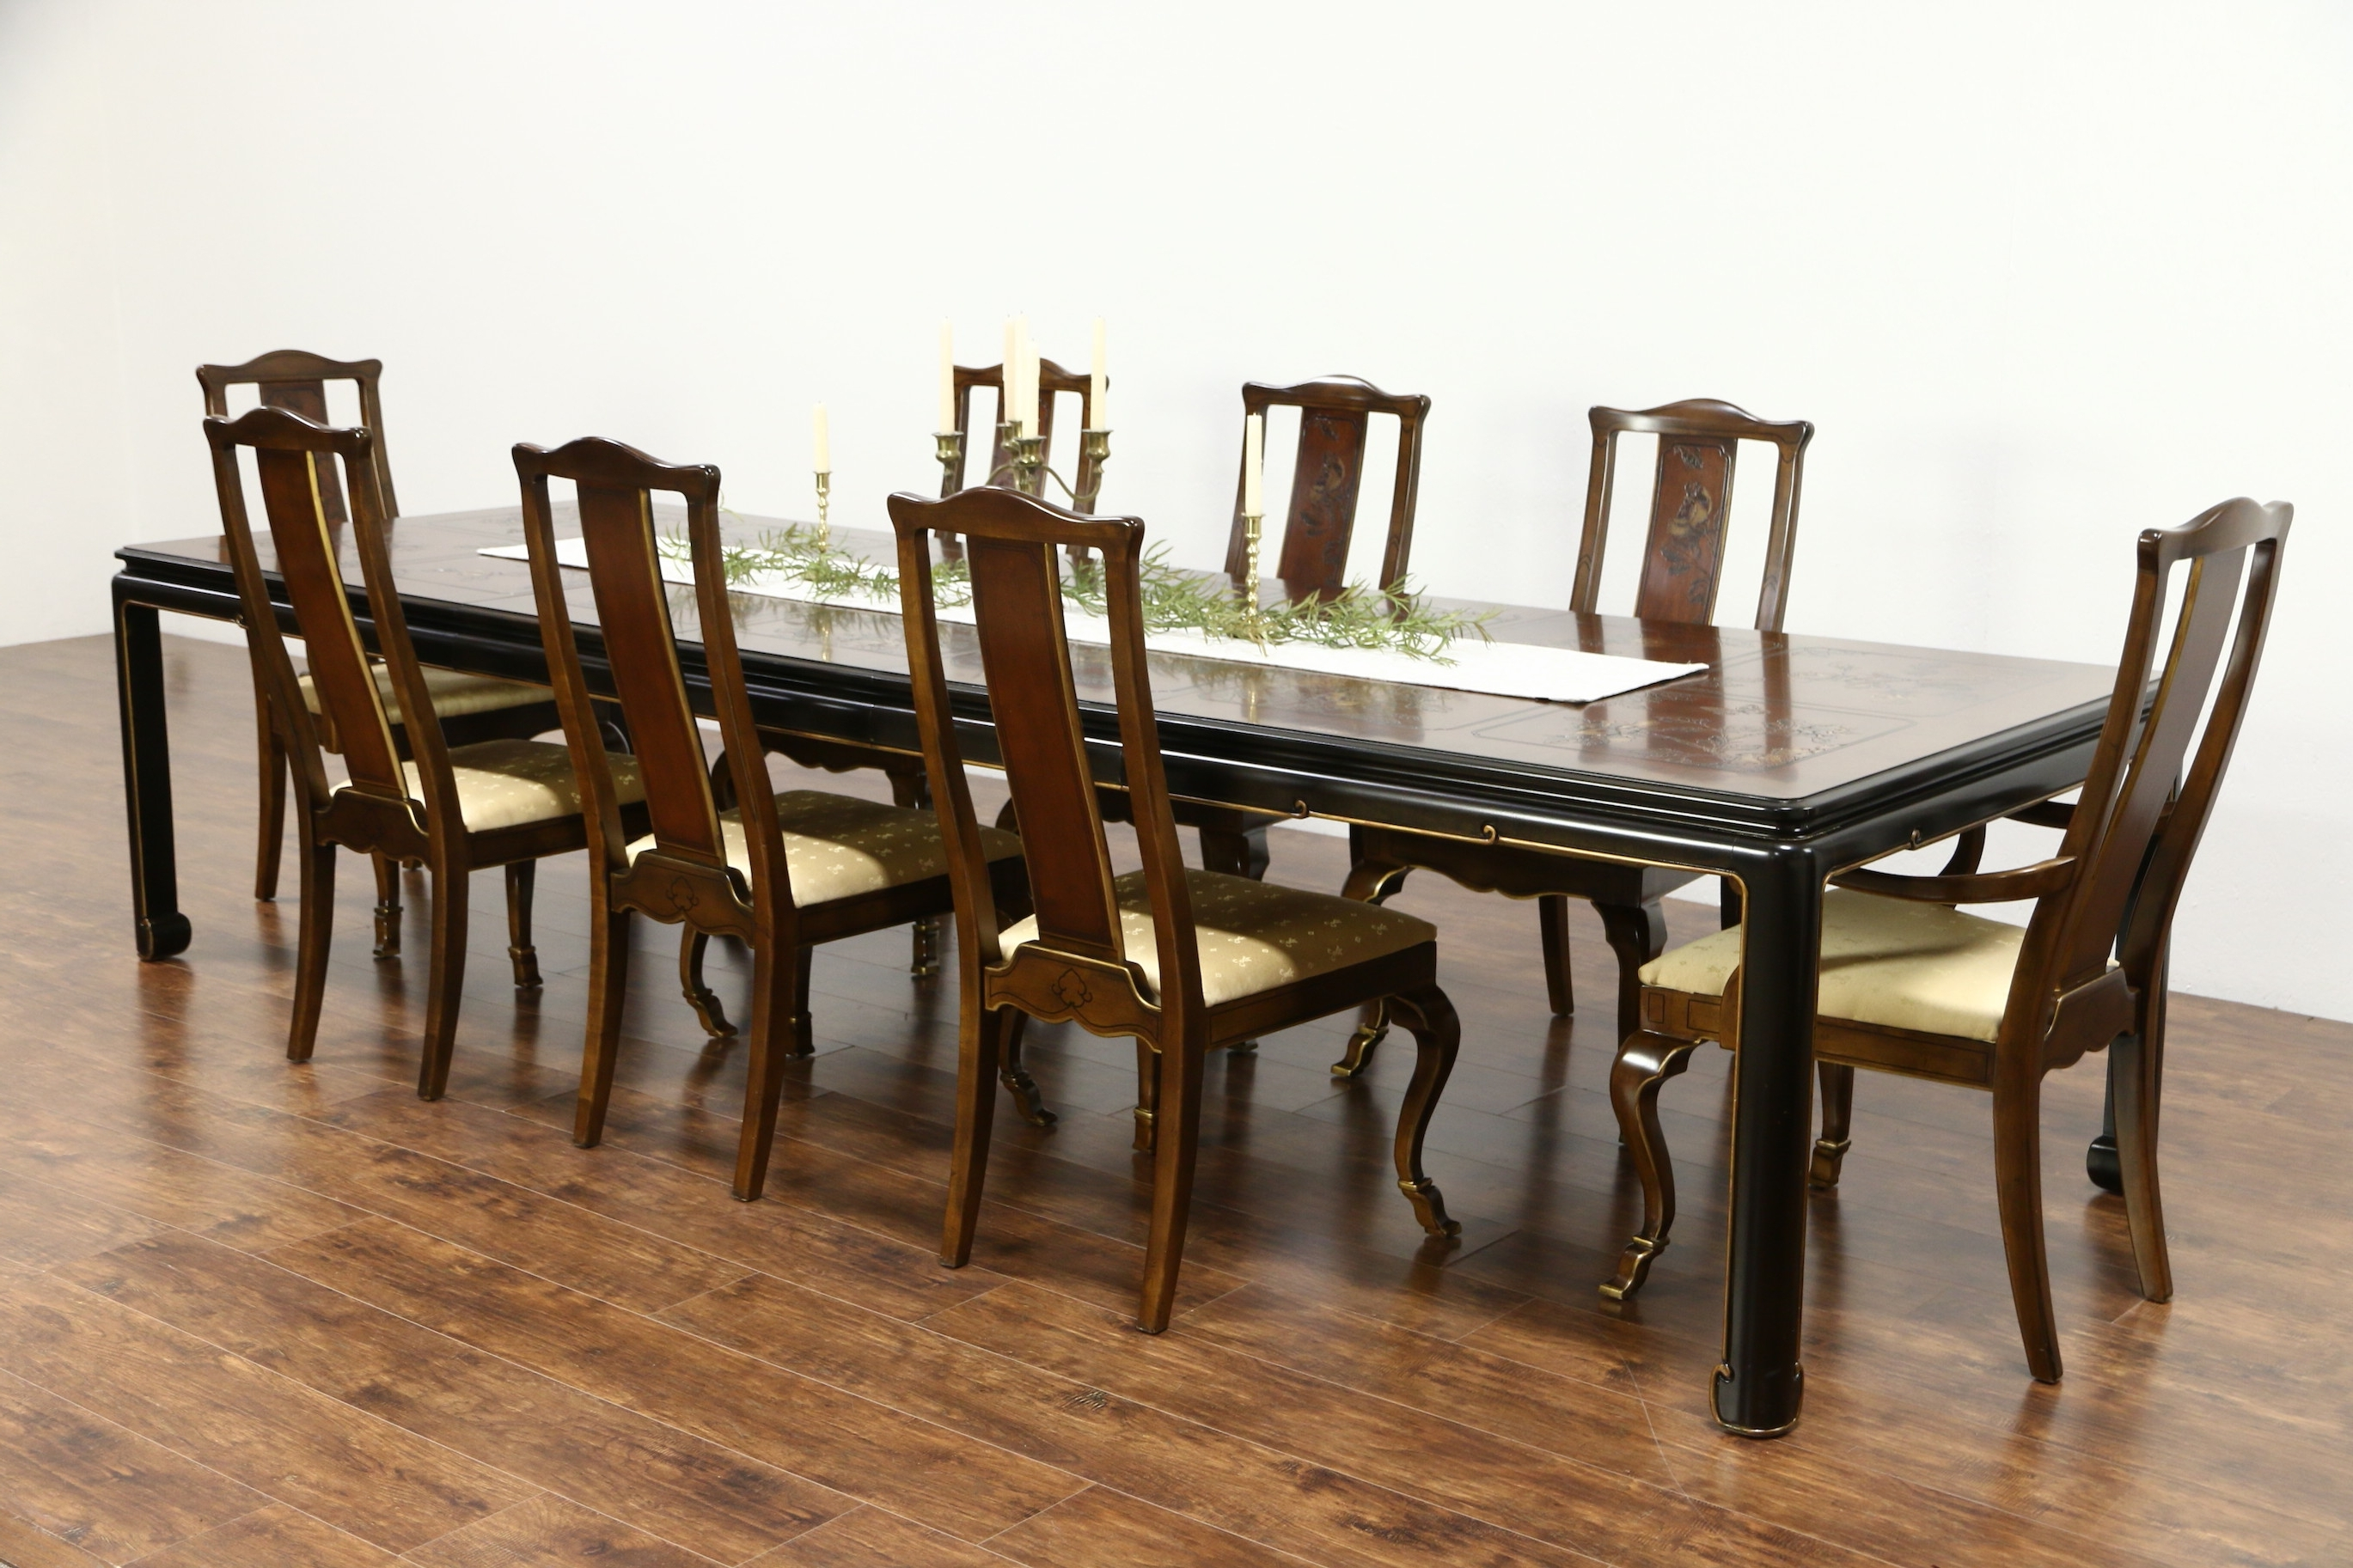 Dining Tables 8 Chairs for Trendy Sold - Drexel Heritage Connoisseur Chinese Motif Vintage Dining Set